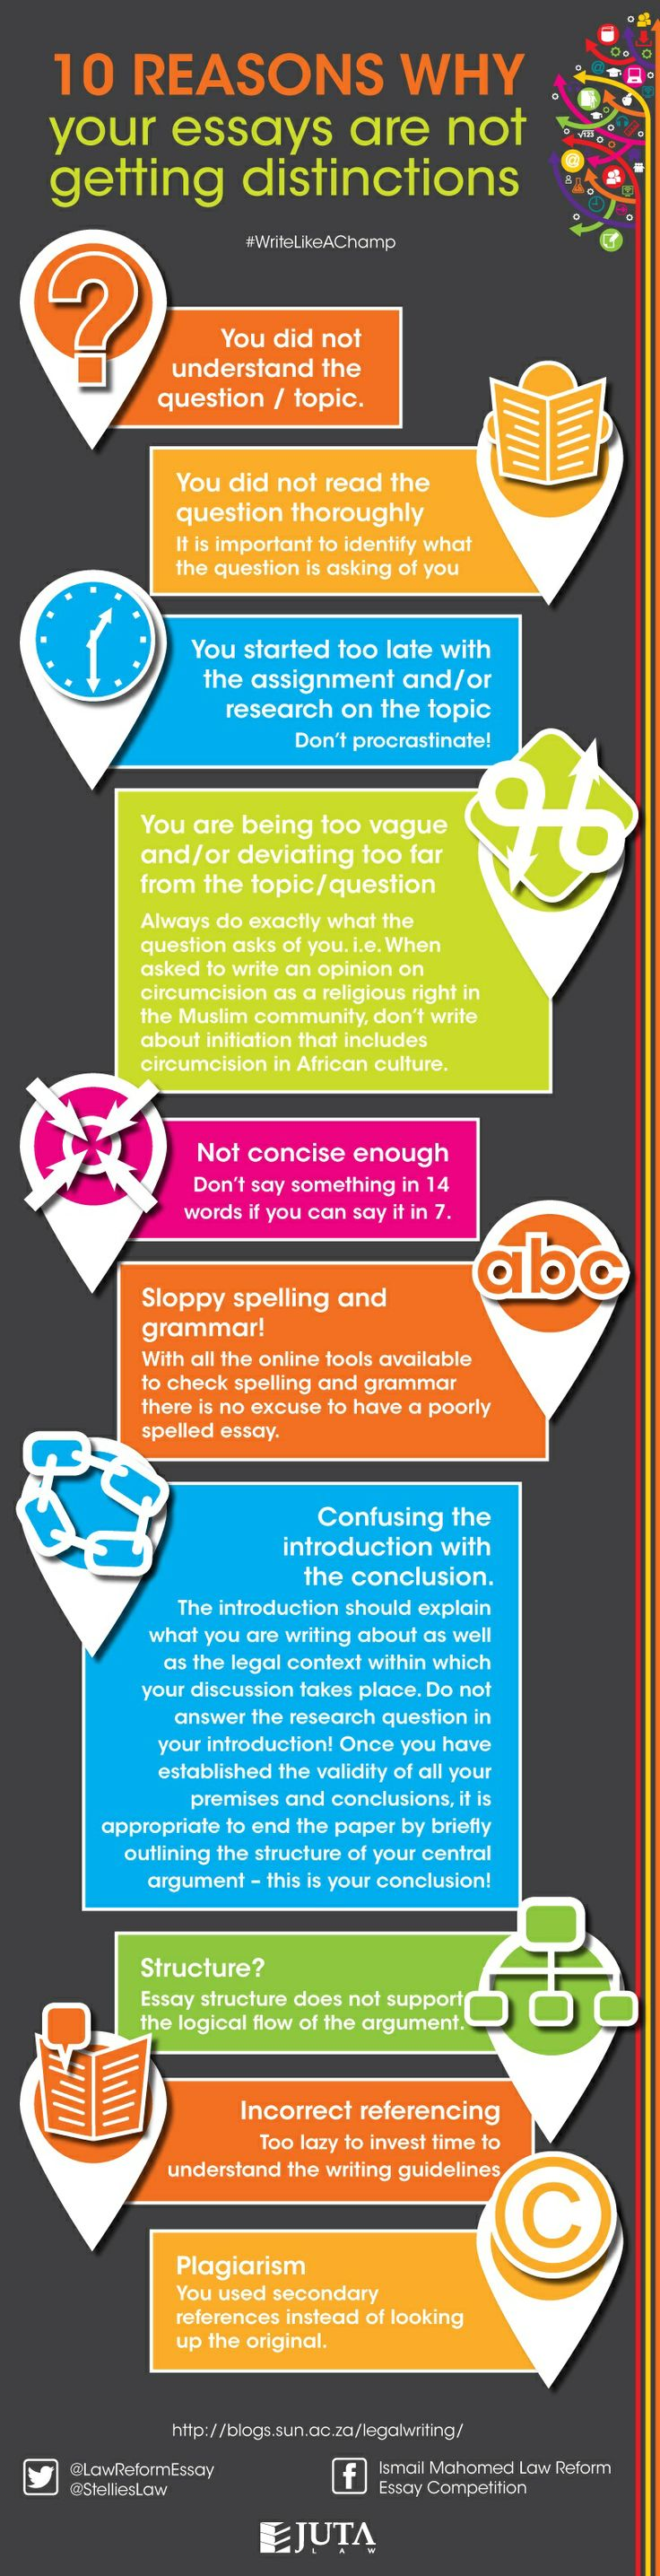 best images about legal essay writing guidelines infographic the help of stellieslaw we listed the 10 reasons why your essays